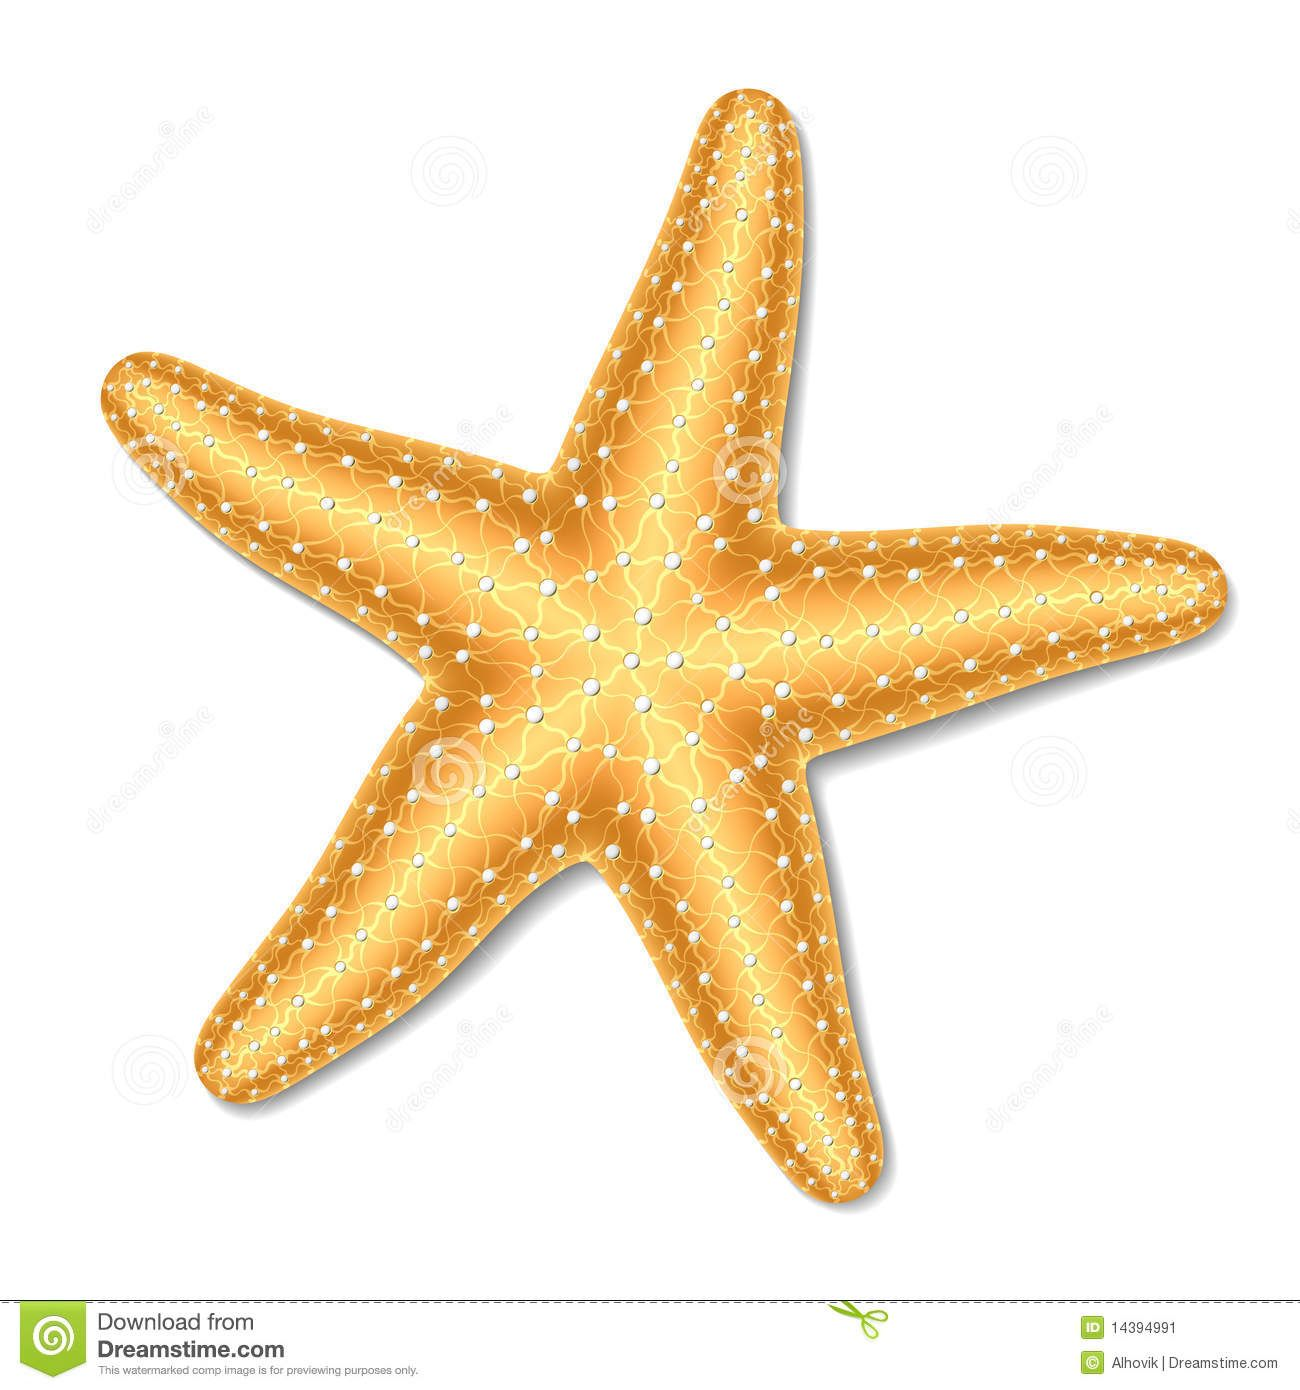 Starfish Stock Image.